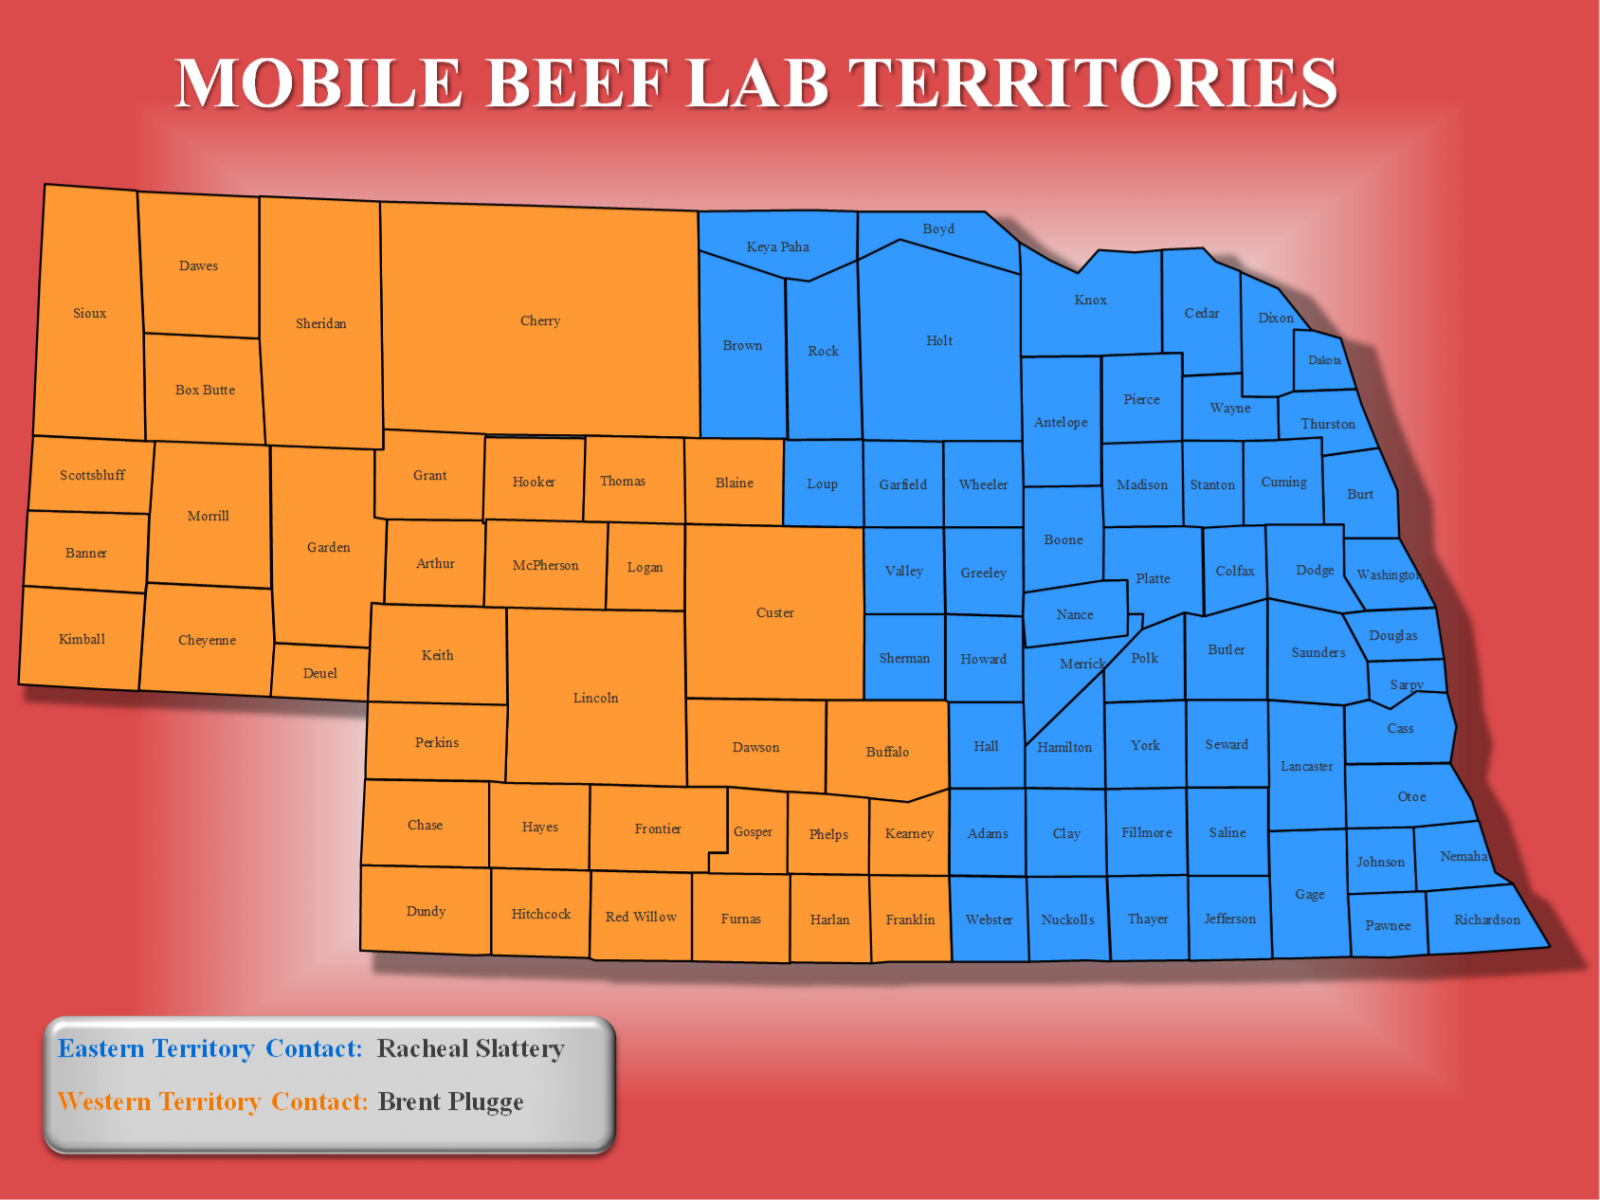 Territory map for UNL Husker Mobile Beef Lab